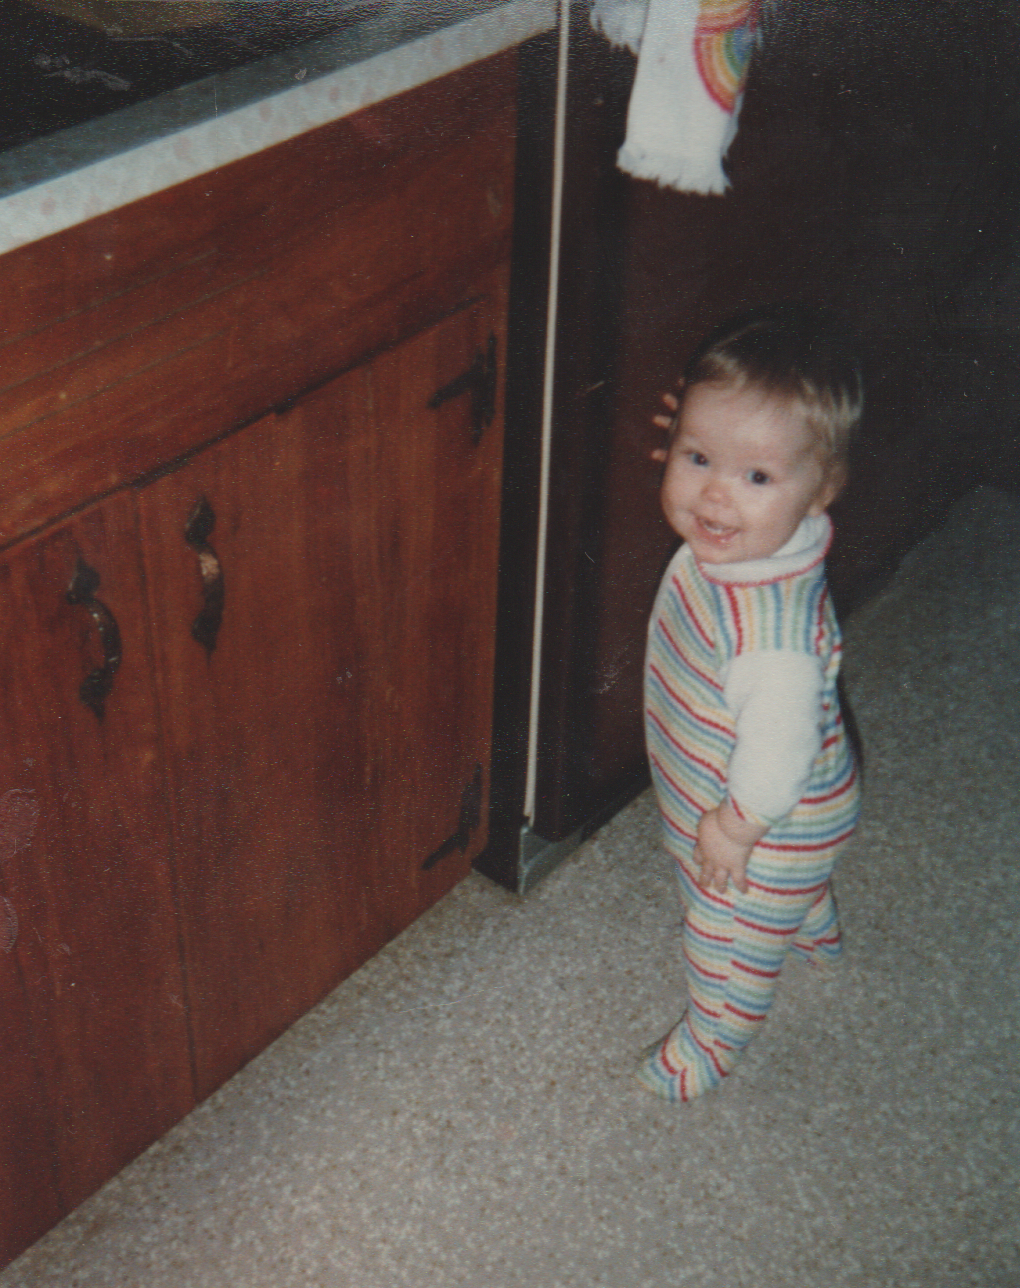 1981-05-17 - Sunday - Katie - Fridge - Standing - Almost 11 Months Old.png